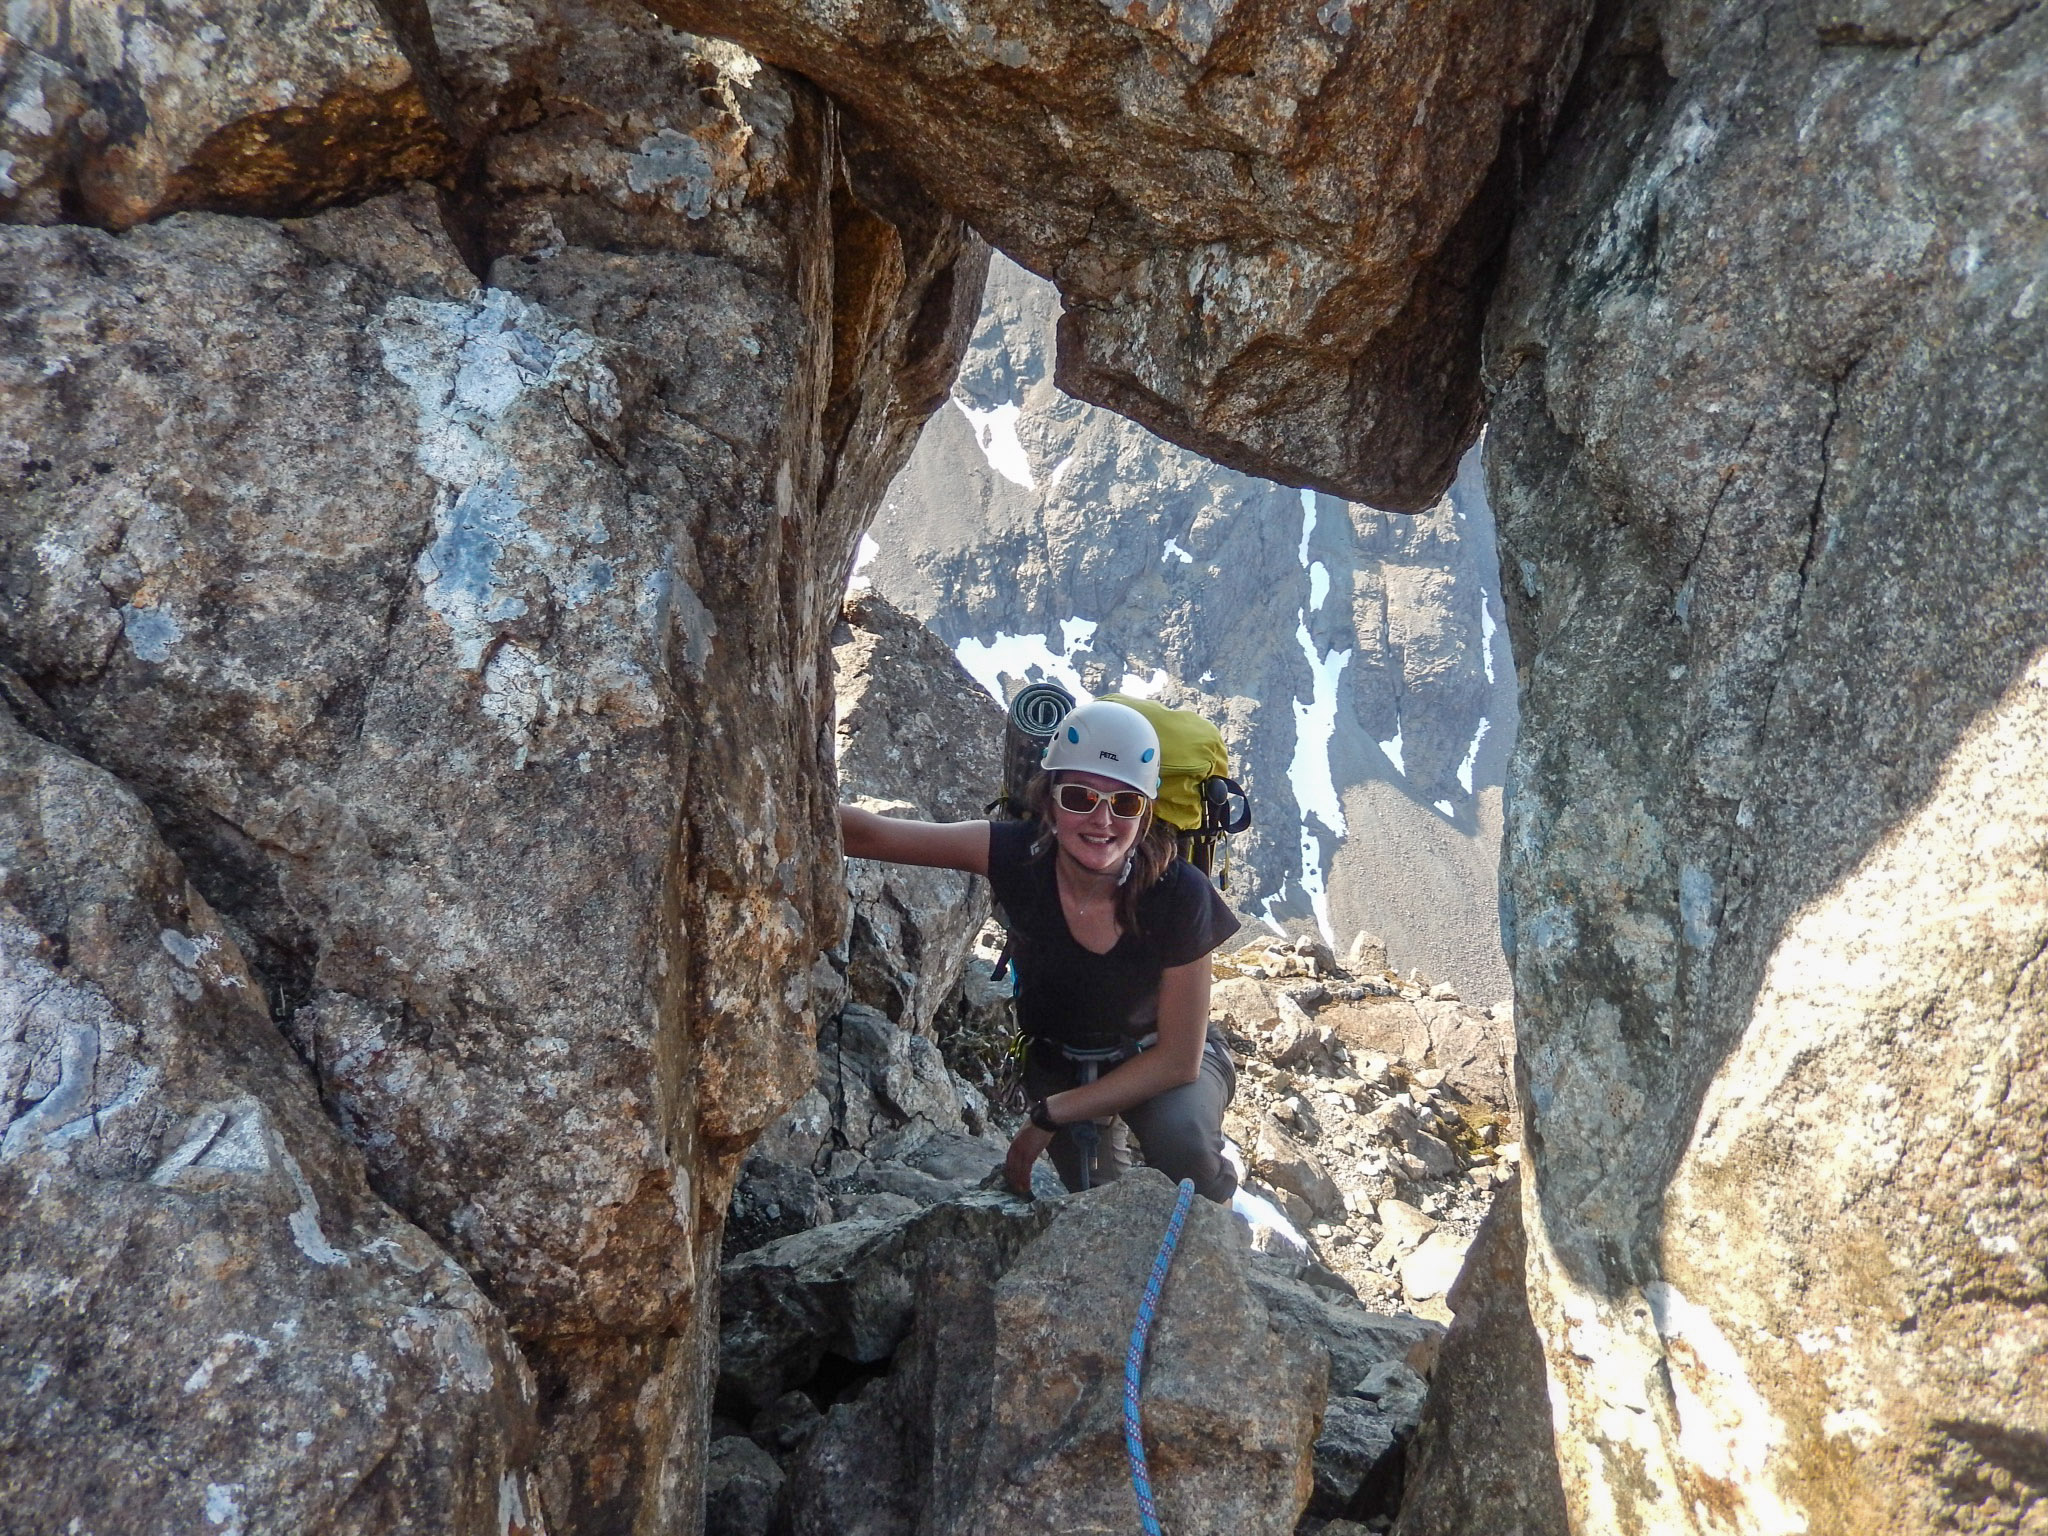 Passing through the eye of the needle just before the final summit!